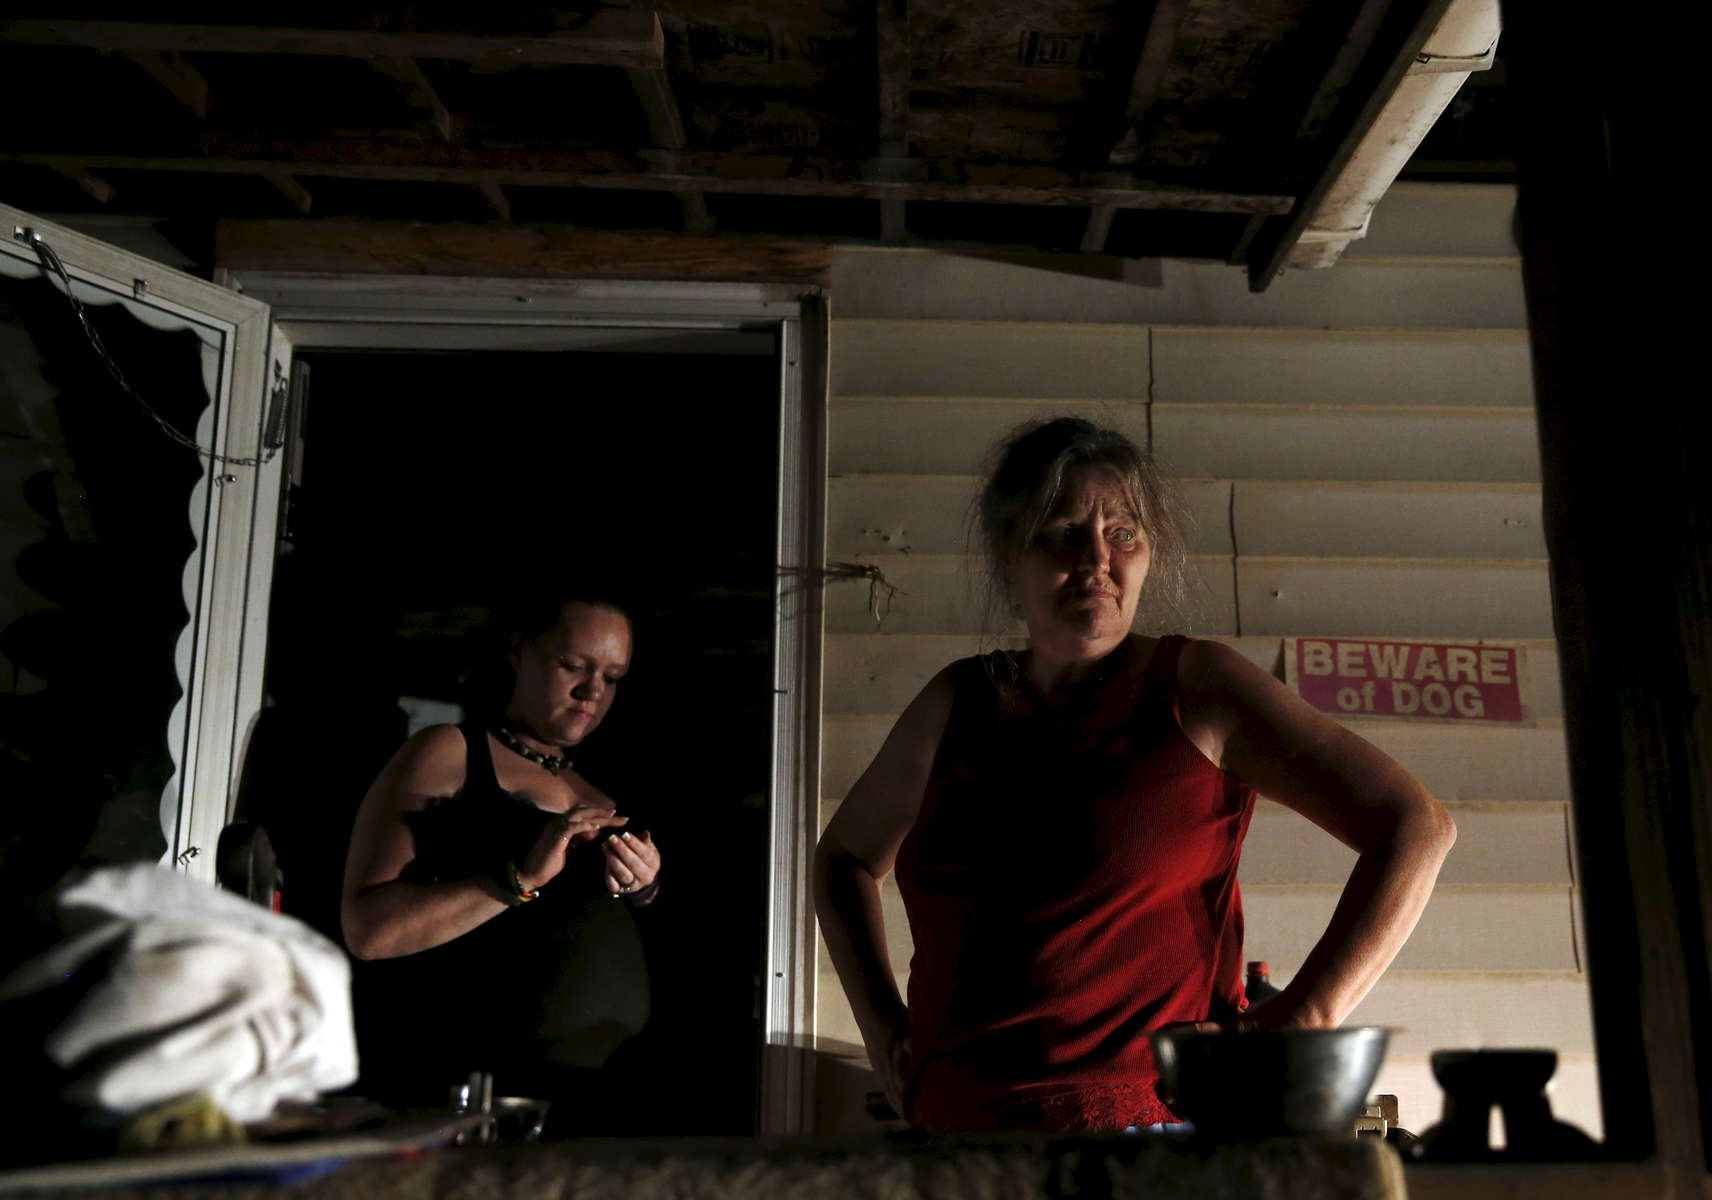 Oxford, Maine -- 5/28/2015-- As the night went on it became clear that they were not going to be able to take all of their possessions with them. Michael's fiancee, Ashly, (L) stood in the doorway with Lanette as they took a break from packing up the family's belongings on the night of the eviction. Jessica Rinaldi/Globe Staff